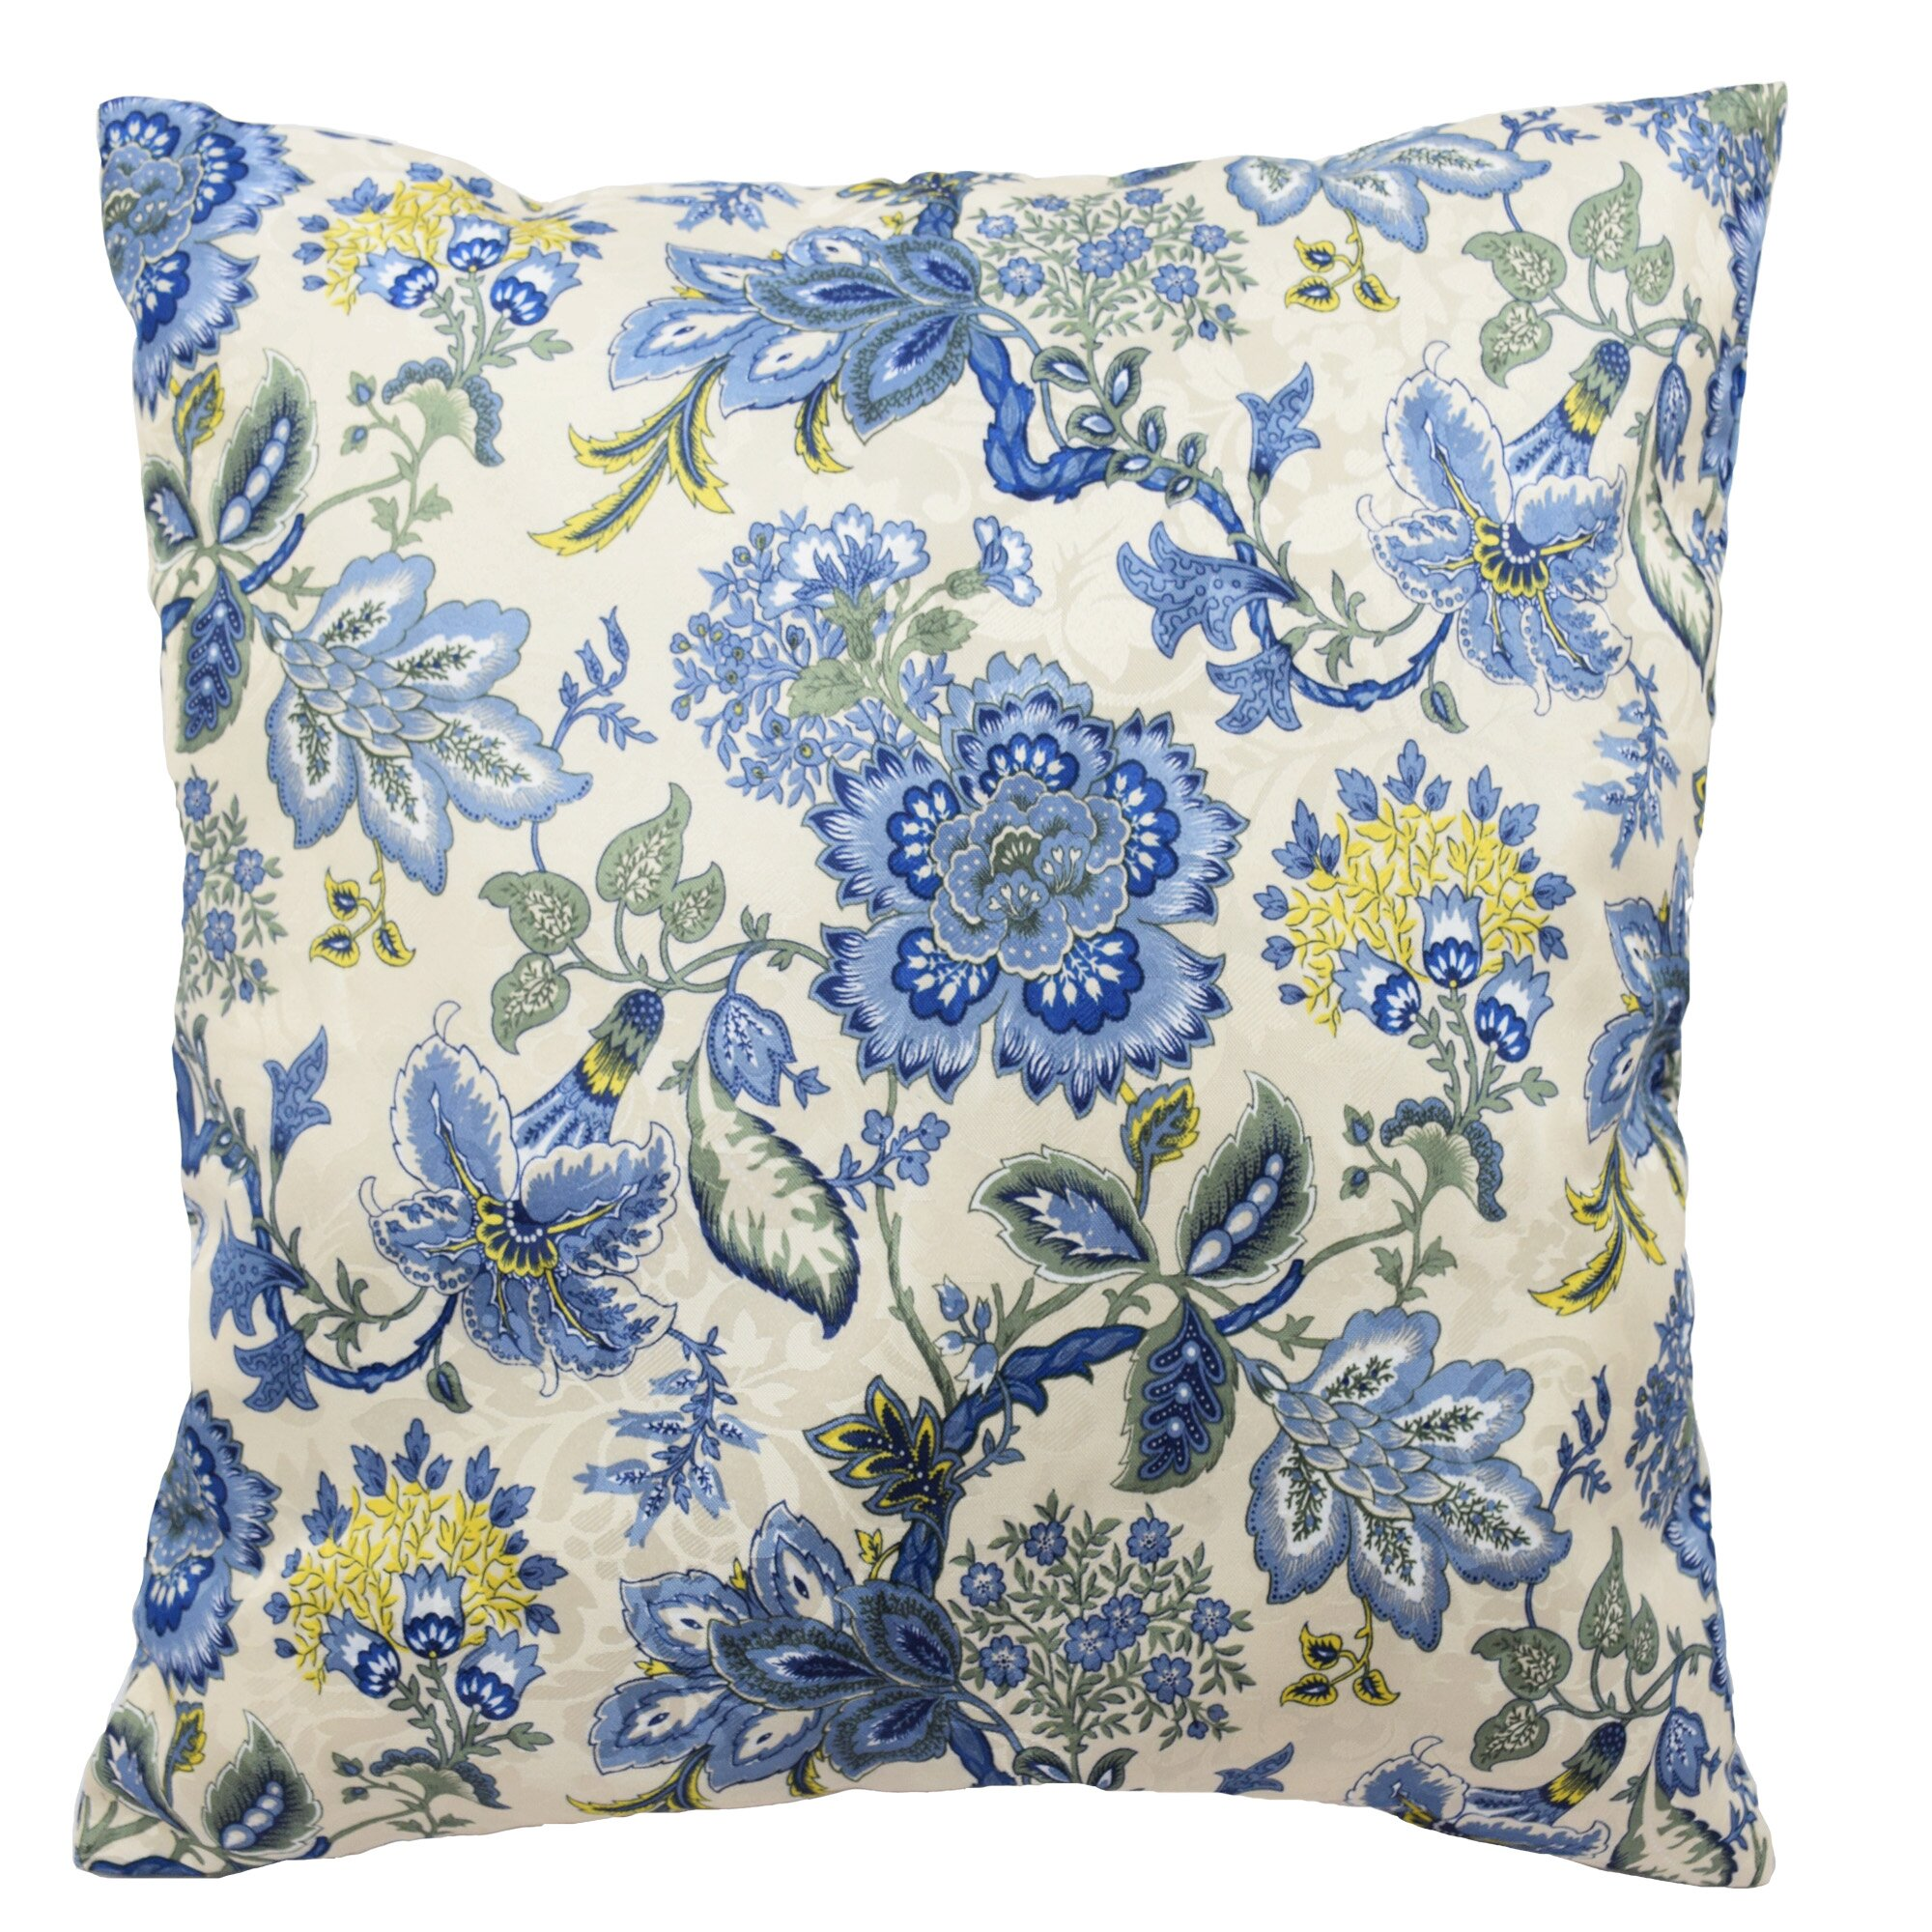 Traditions by waverly navarra floral decorative throw pillow reviews wayfair - Decorative throw pillows ...